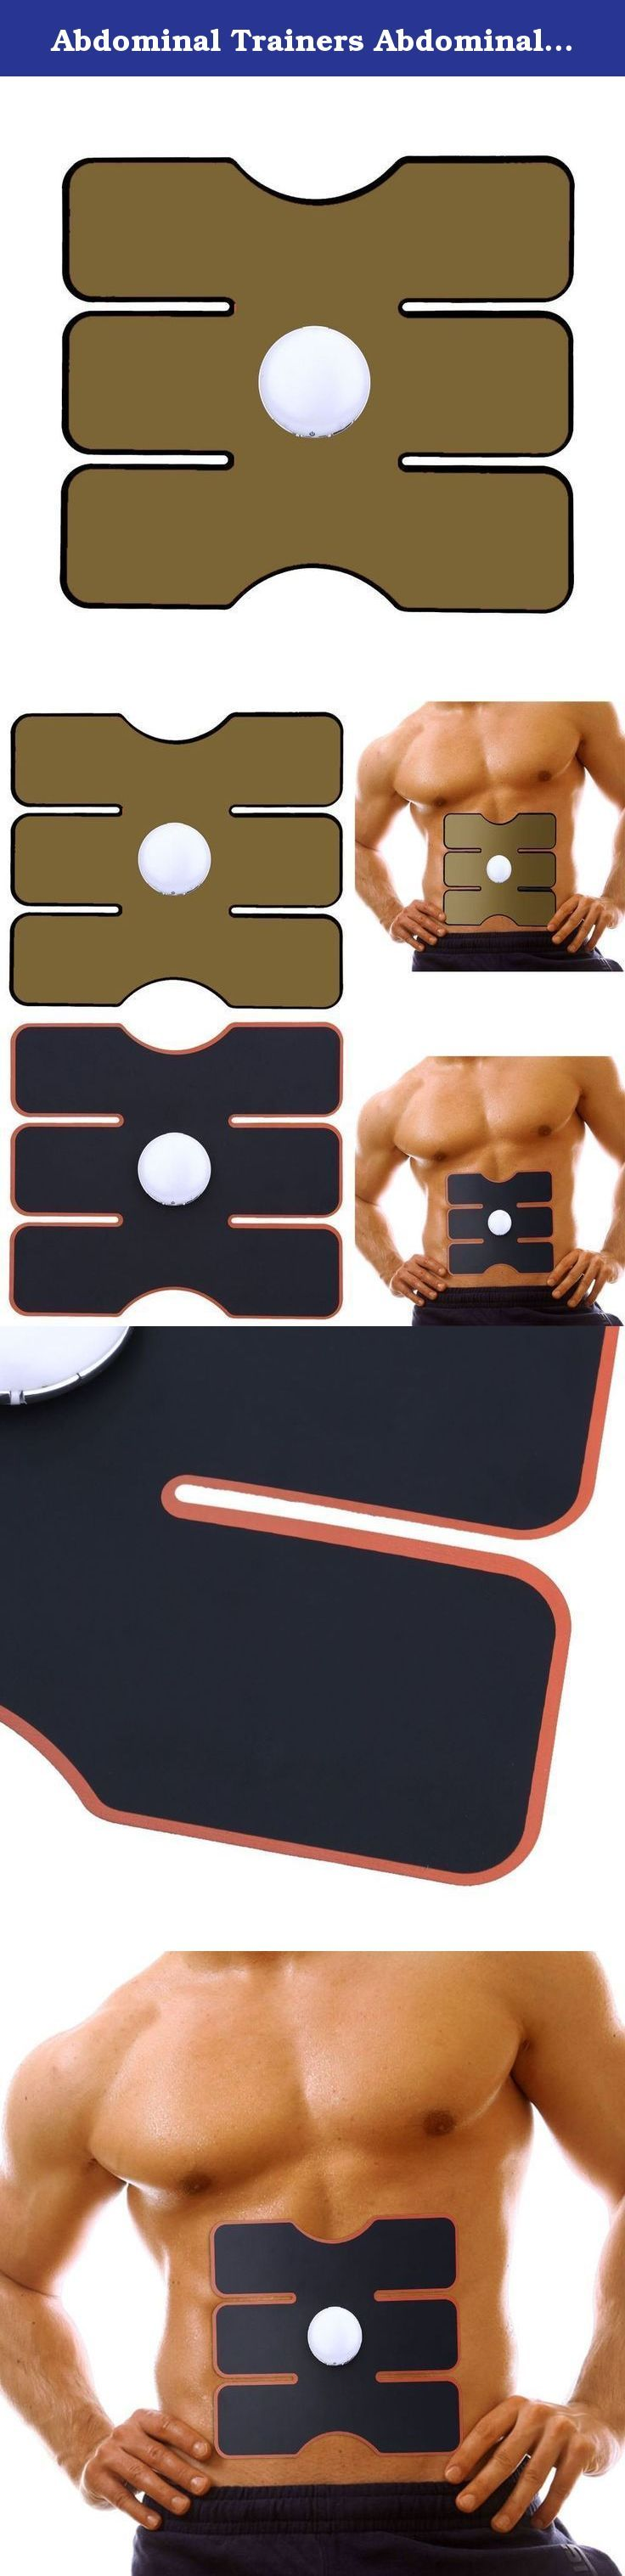 Abdominal Trainers Abdominal Muscle Fitness Six Pack Trainer Body Shaping Lazy Exercise Machine fitness equipment for Sit / stand New Gold. Abdominal Trainers Abdominal Muscle Fitness Six Pack Trainer Body Shaping Lazy Exercise Machine fitness equipment for Sit / stand New Gold#523.